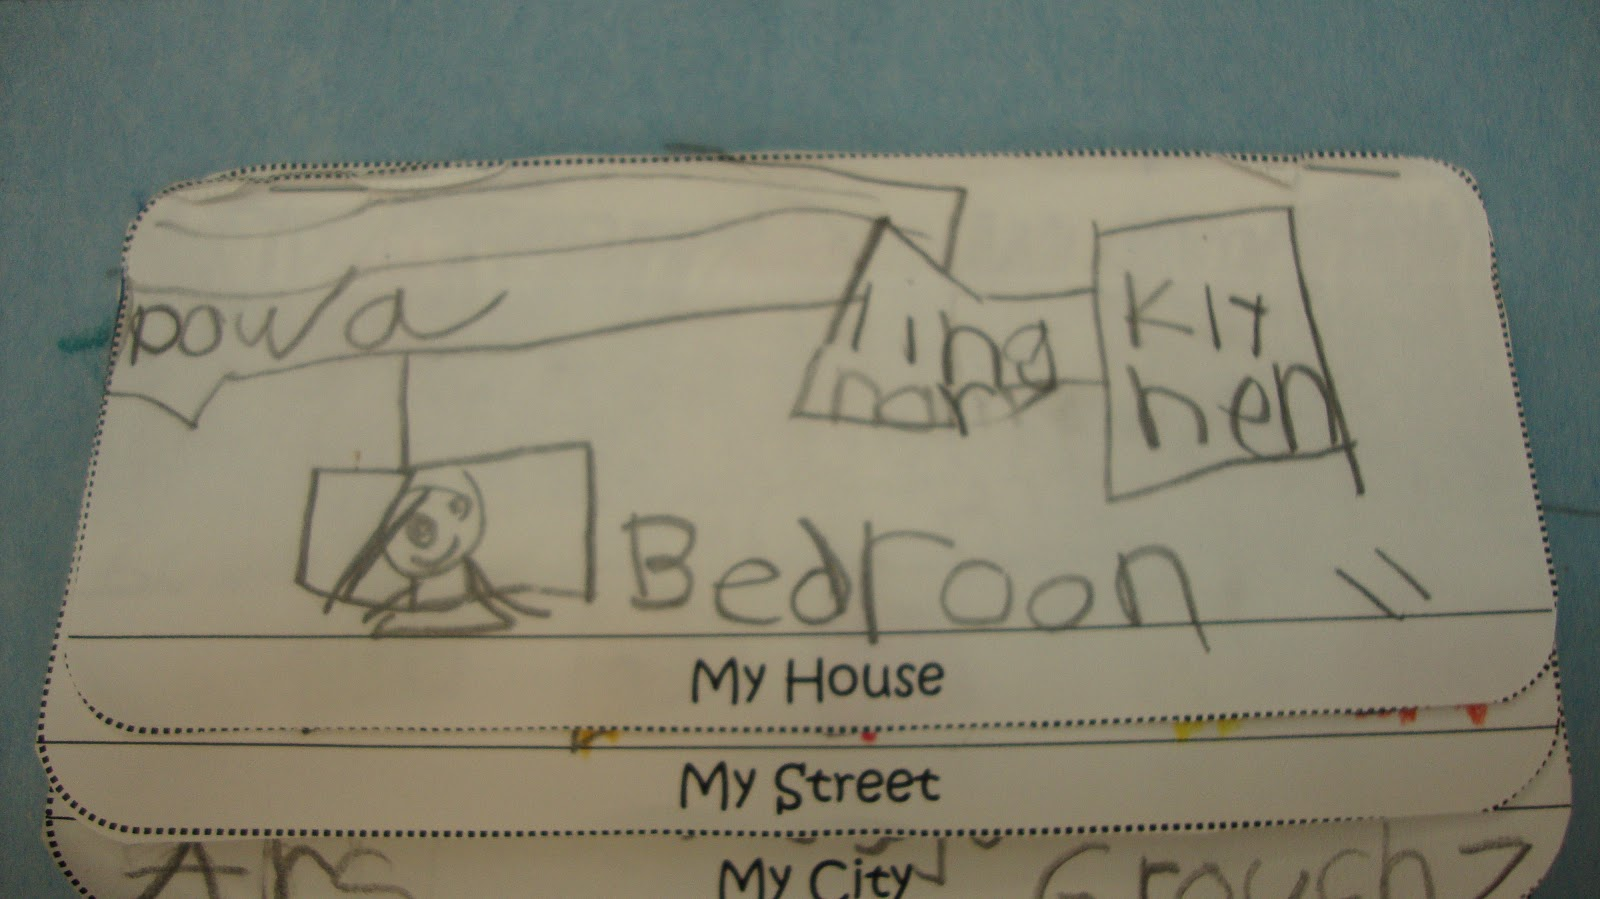 i demonstrated how to make a map of your house and then the children made their own maps of what their houses looked like labeling important places like